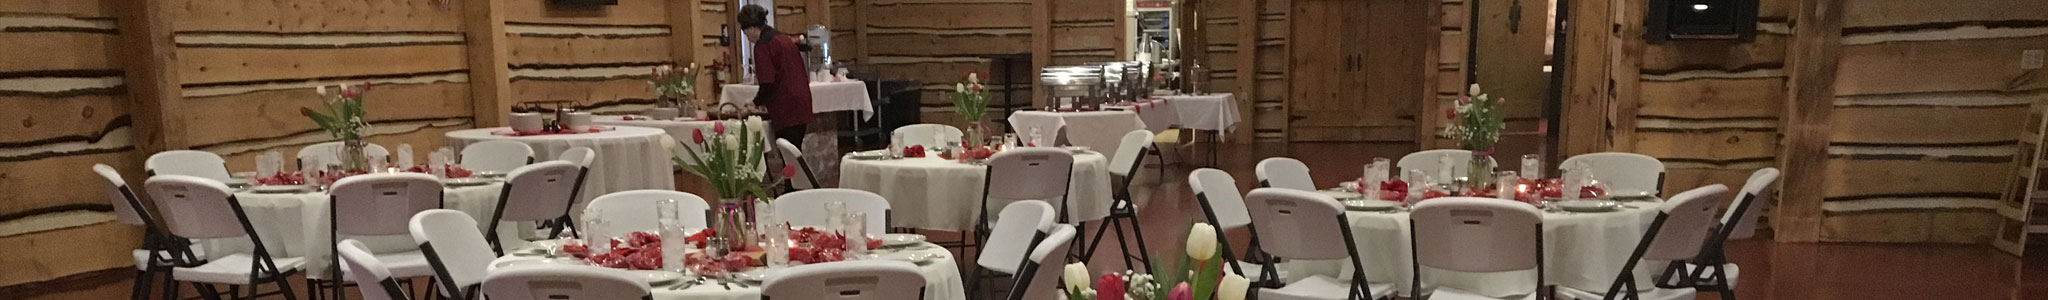 Greenland's Lodge of Spruce Creek - Banquet Facility and Wedding Venue Open Year Round - 3462 Birmingham Pike, Alexandria, PA 16611 - Private Showings are Available Upon Request